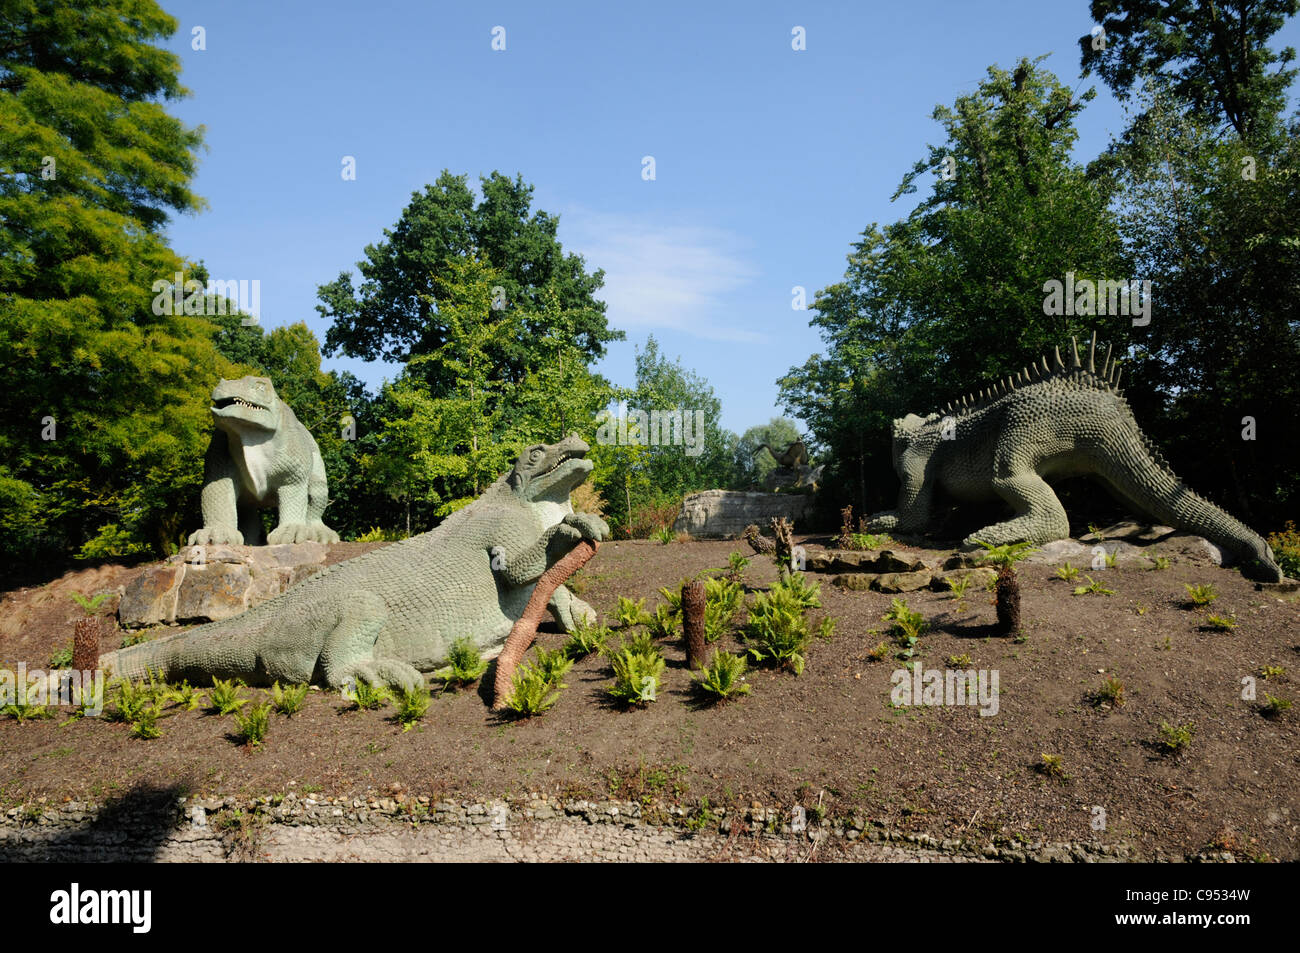 Dinosaur Statues Made Of Stone Amoungst Trees In Dinosaur Court At Crystal  Palace Park, South East London.